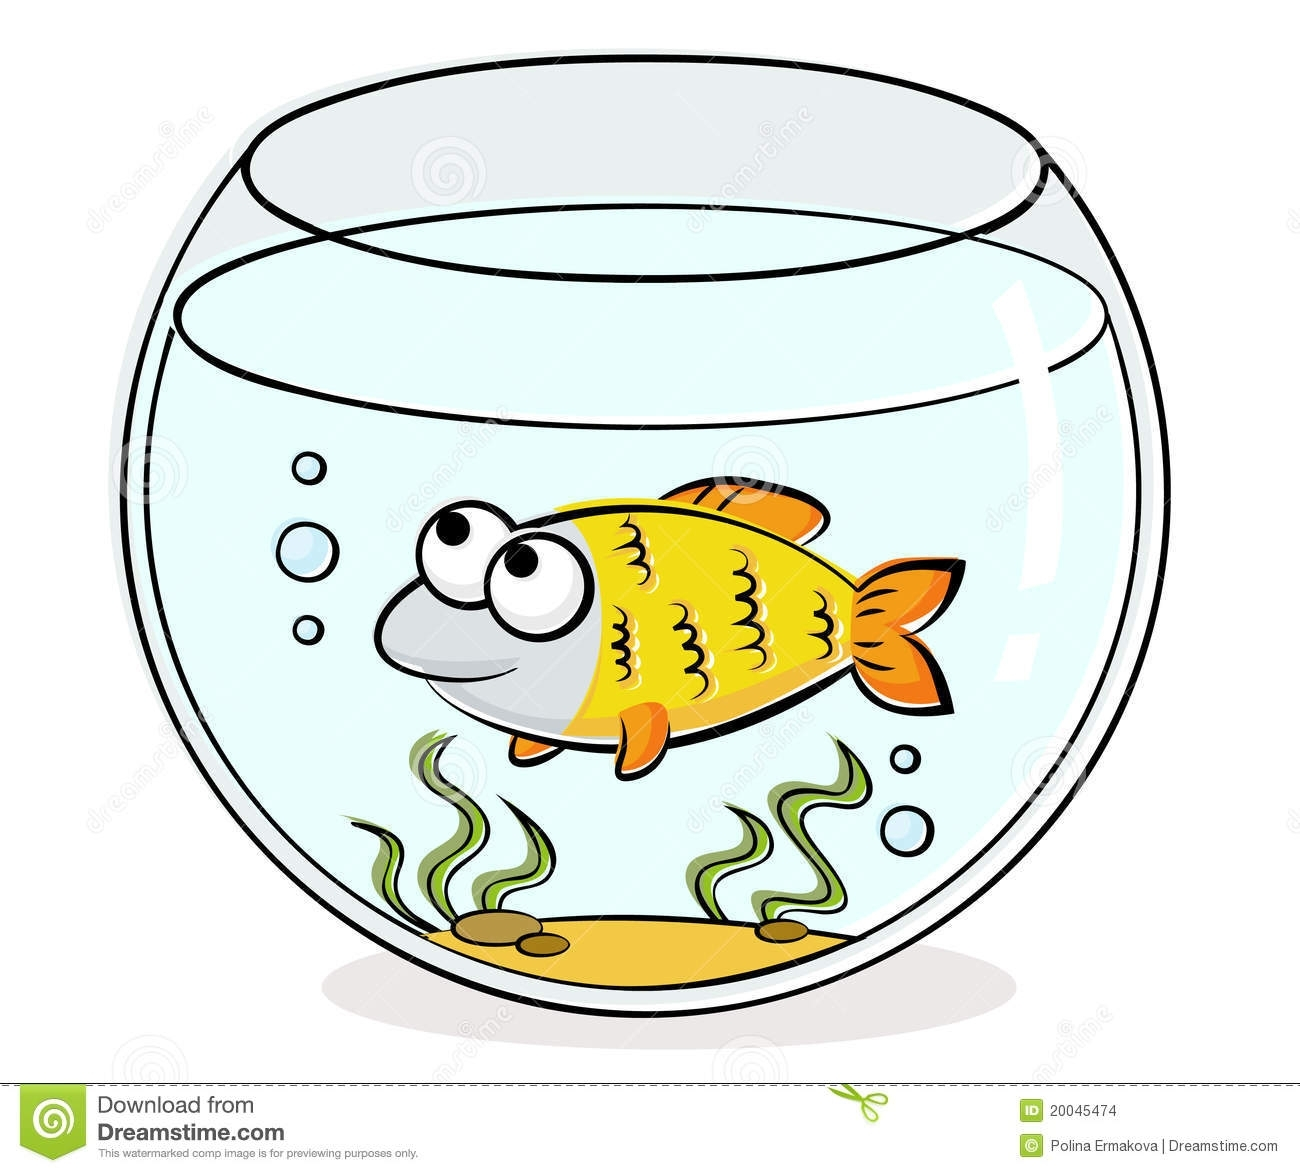 Aquarium clipart fish tank. Awesome design digital collection